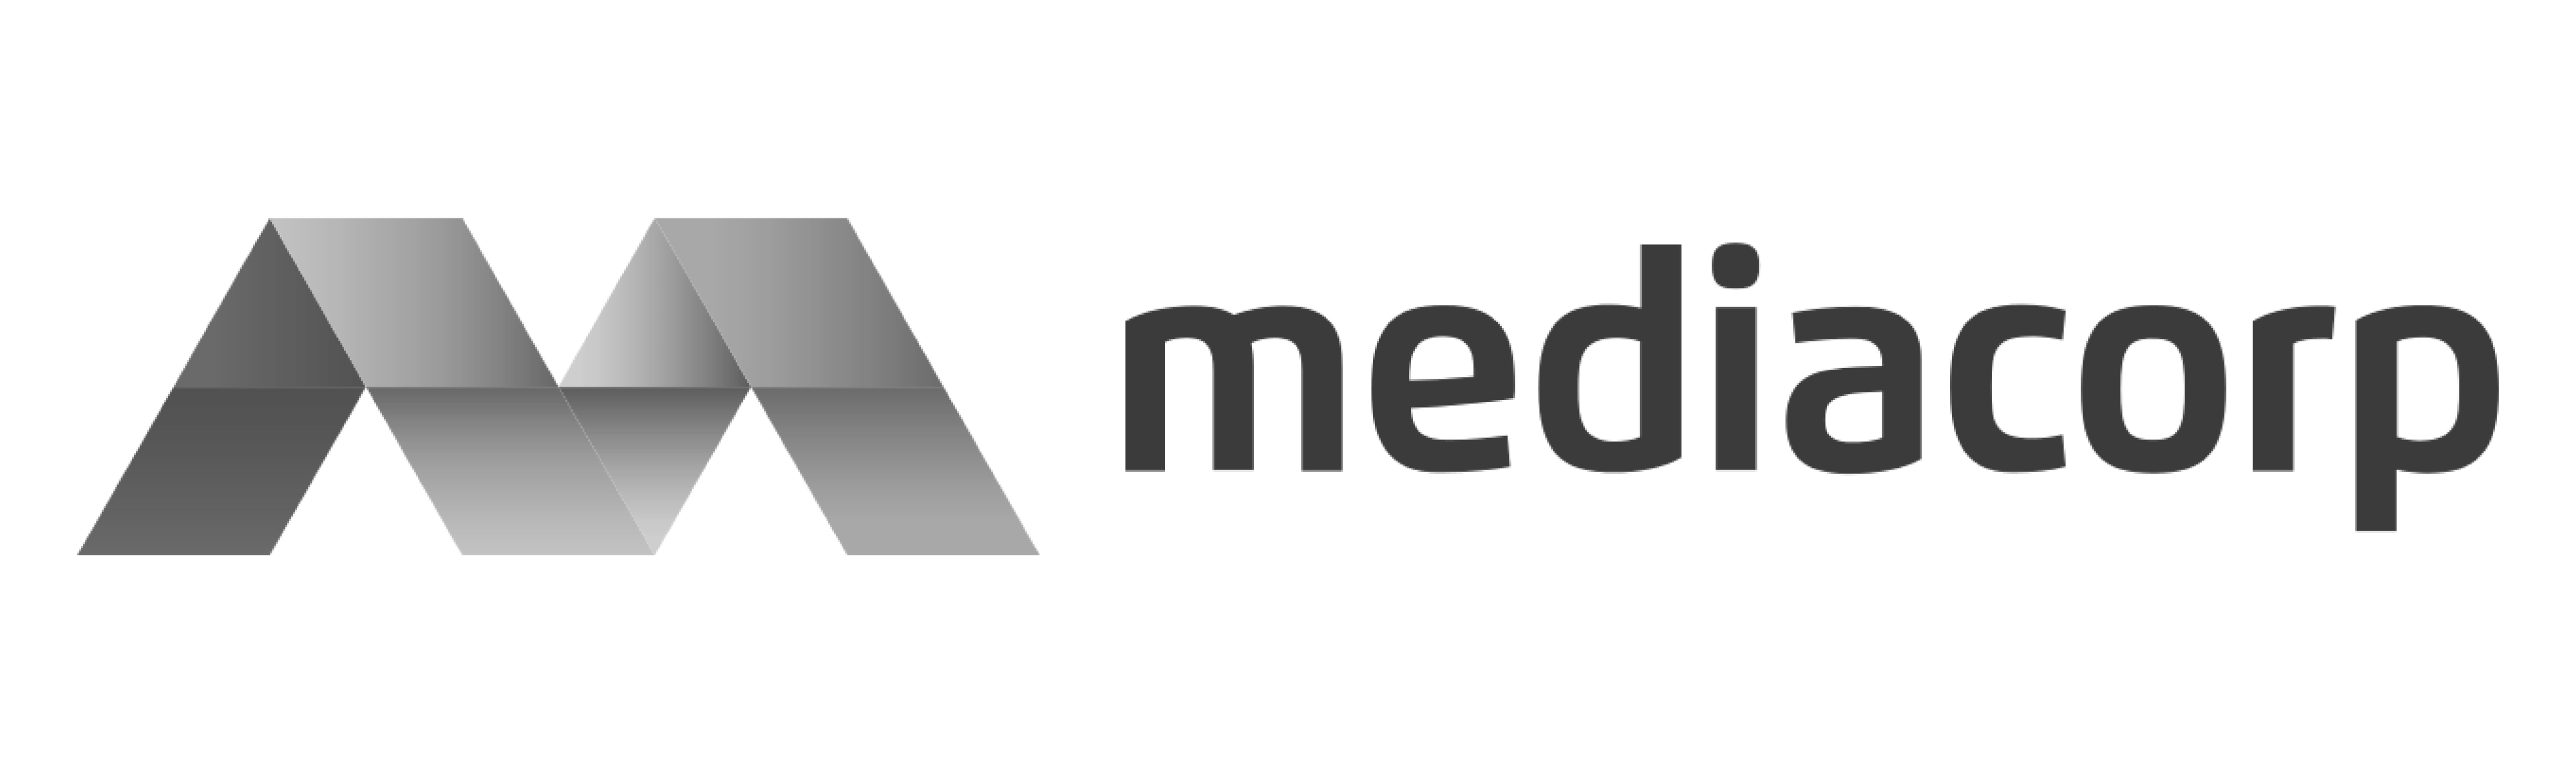 Mediacorp grouu.io agency work